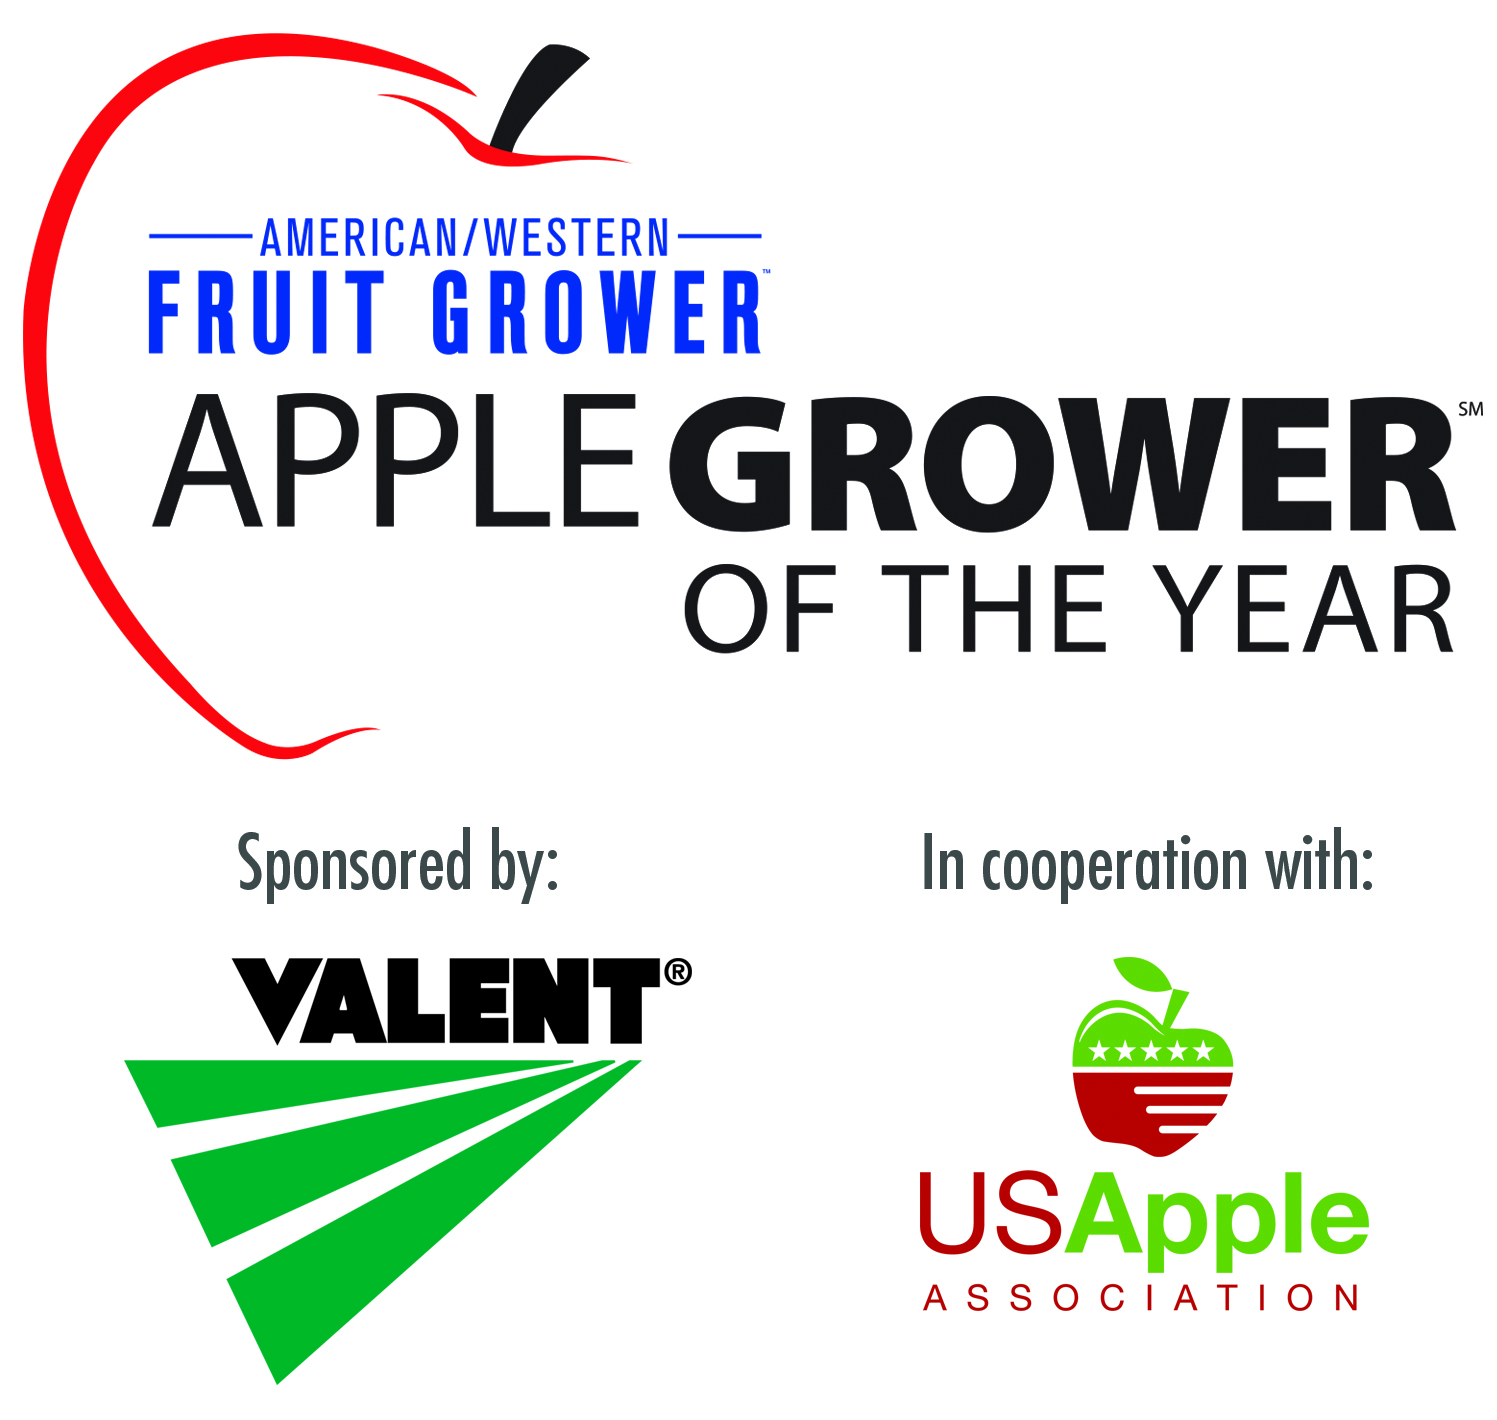 Apple-Grower-of-the-Year-Pt-2